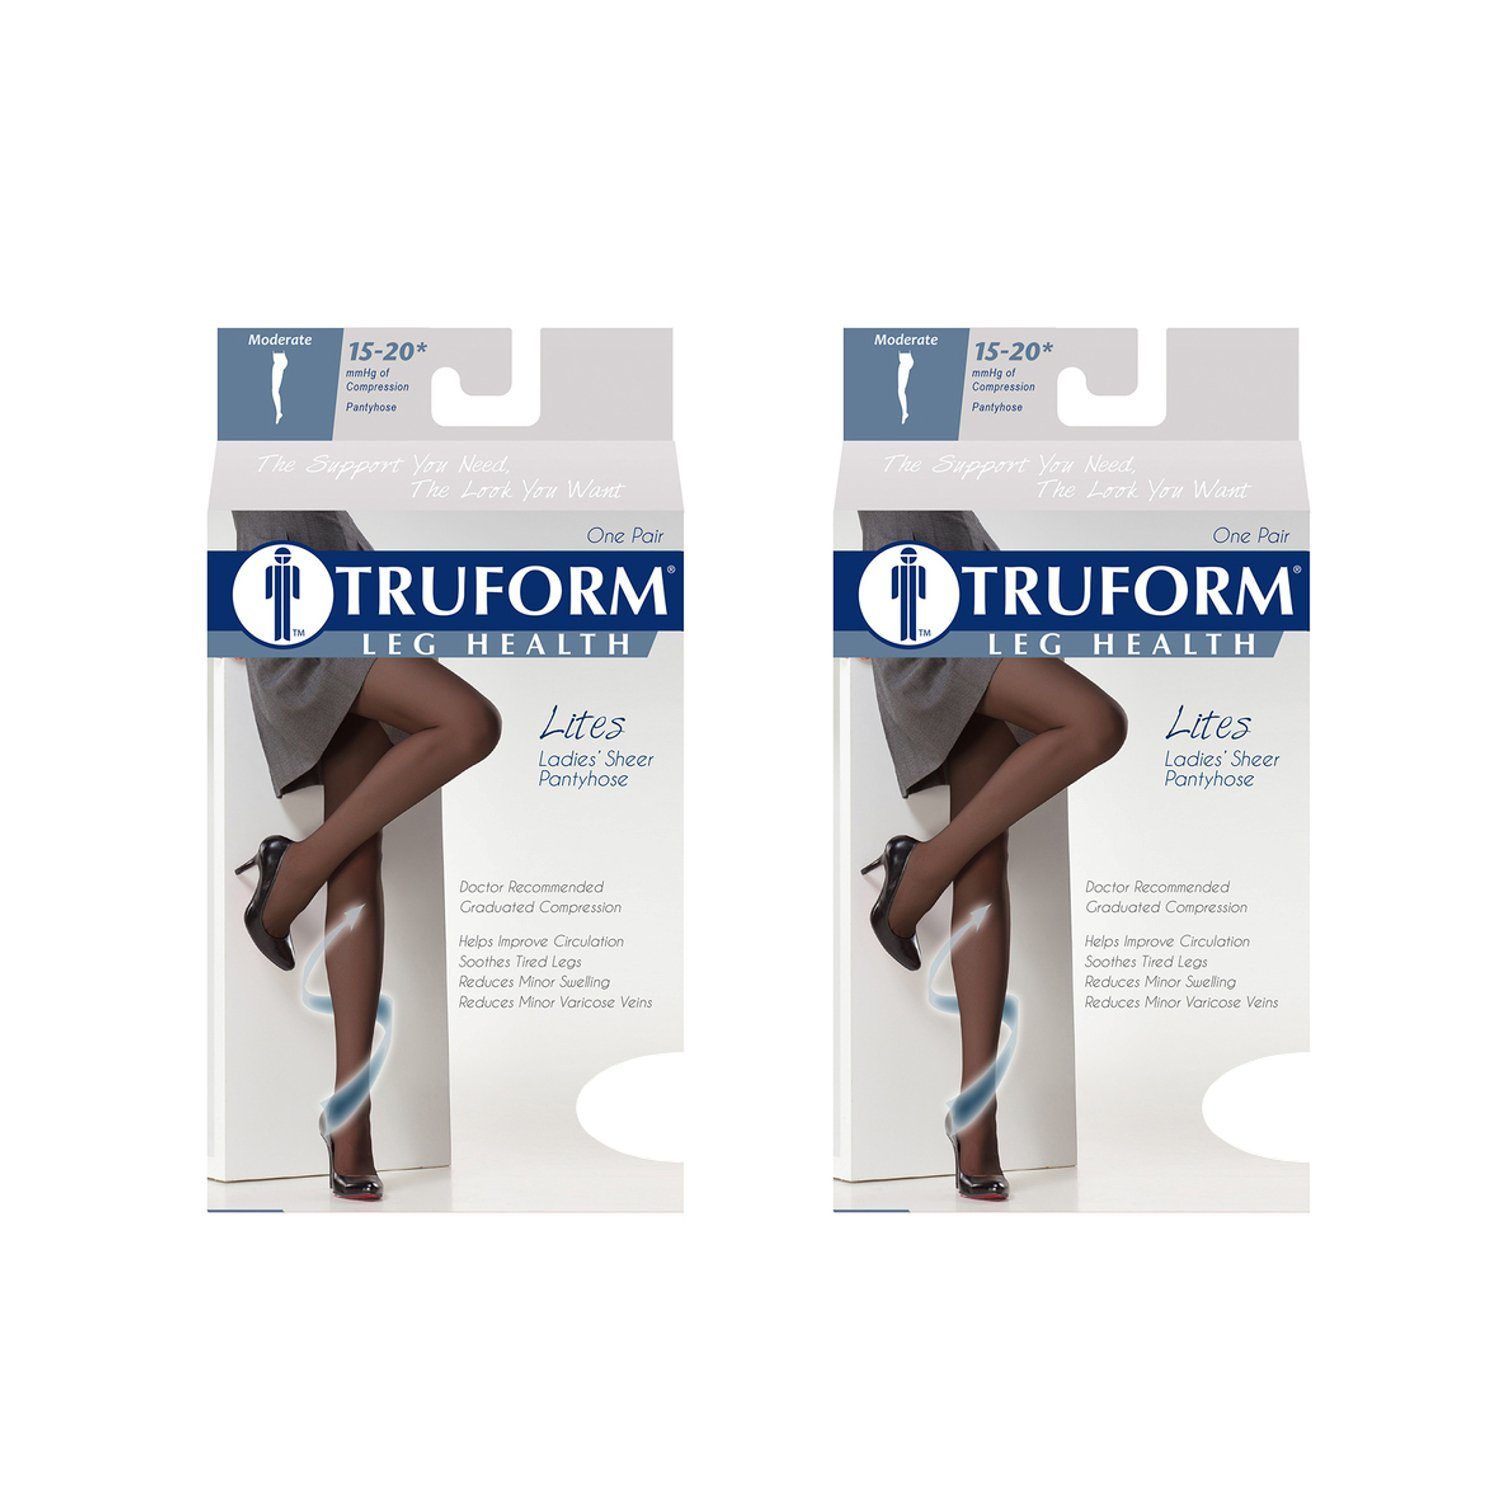 Truform 1775, Women's Sheer Compression Pantyhose, 15-20 mmHg, Queen, Nude, (Pack of 2)